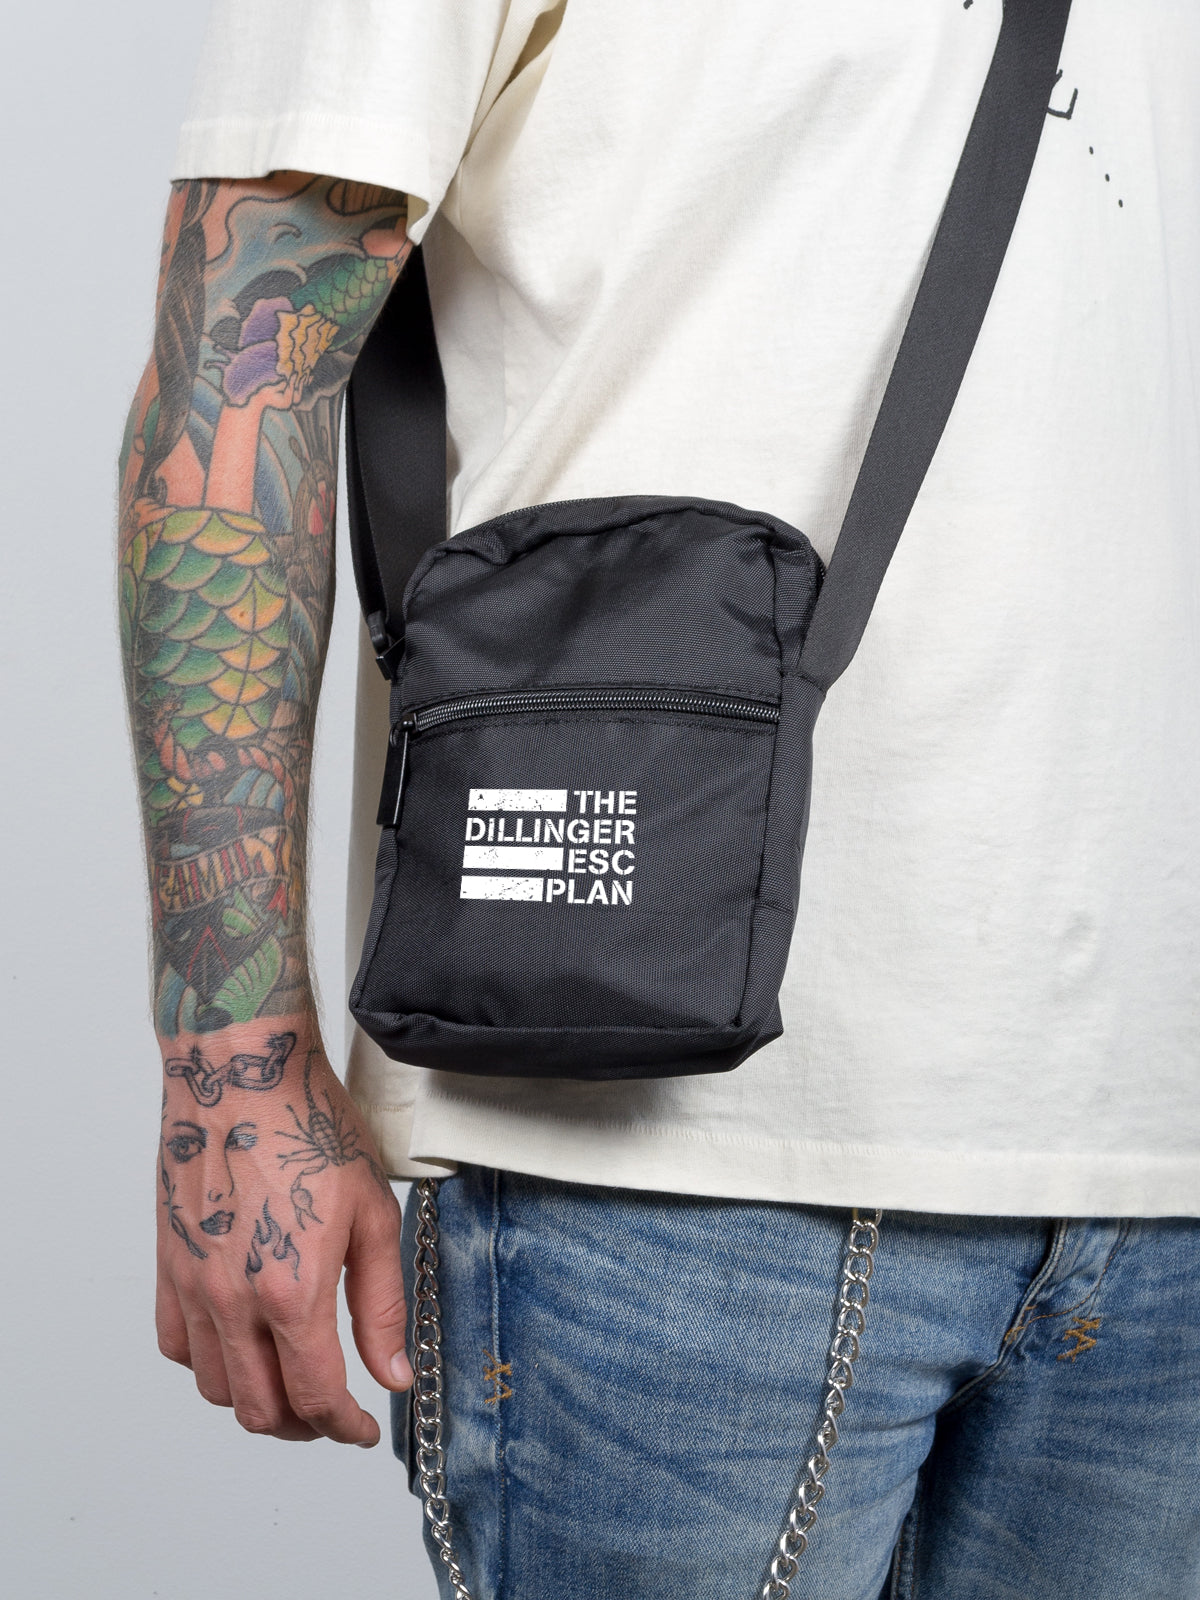 Dillinger Escape Plan - Mini Messenger Bag - Merch Limited